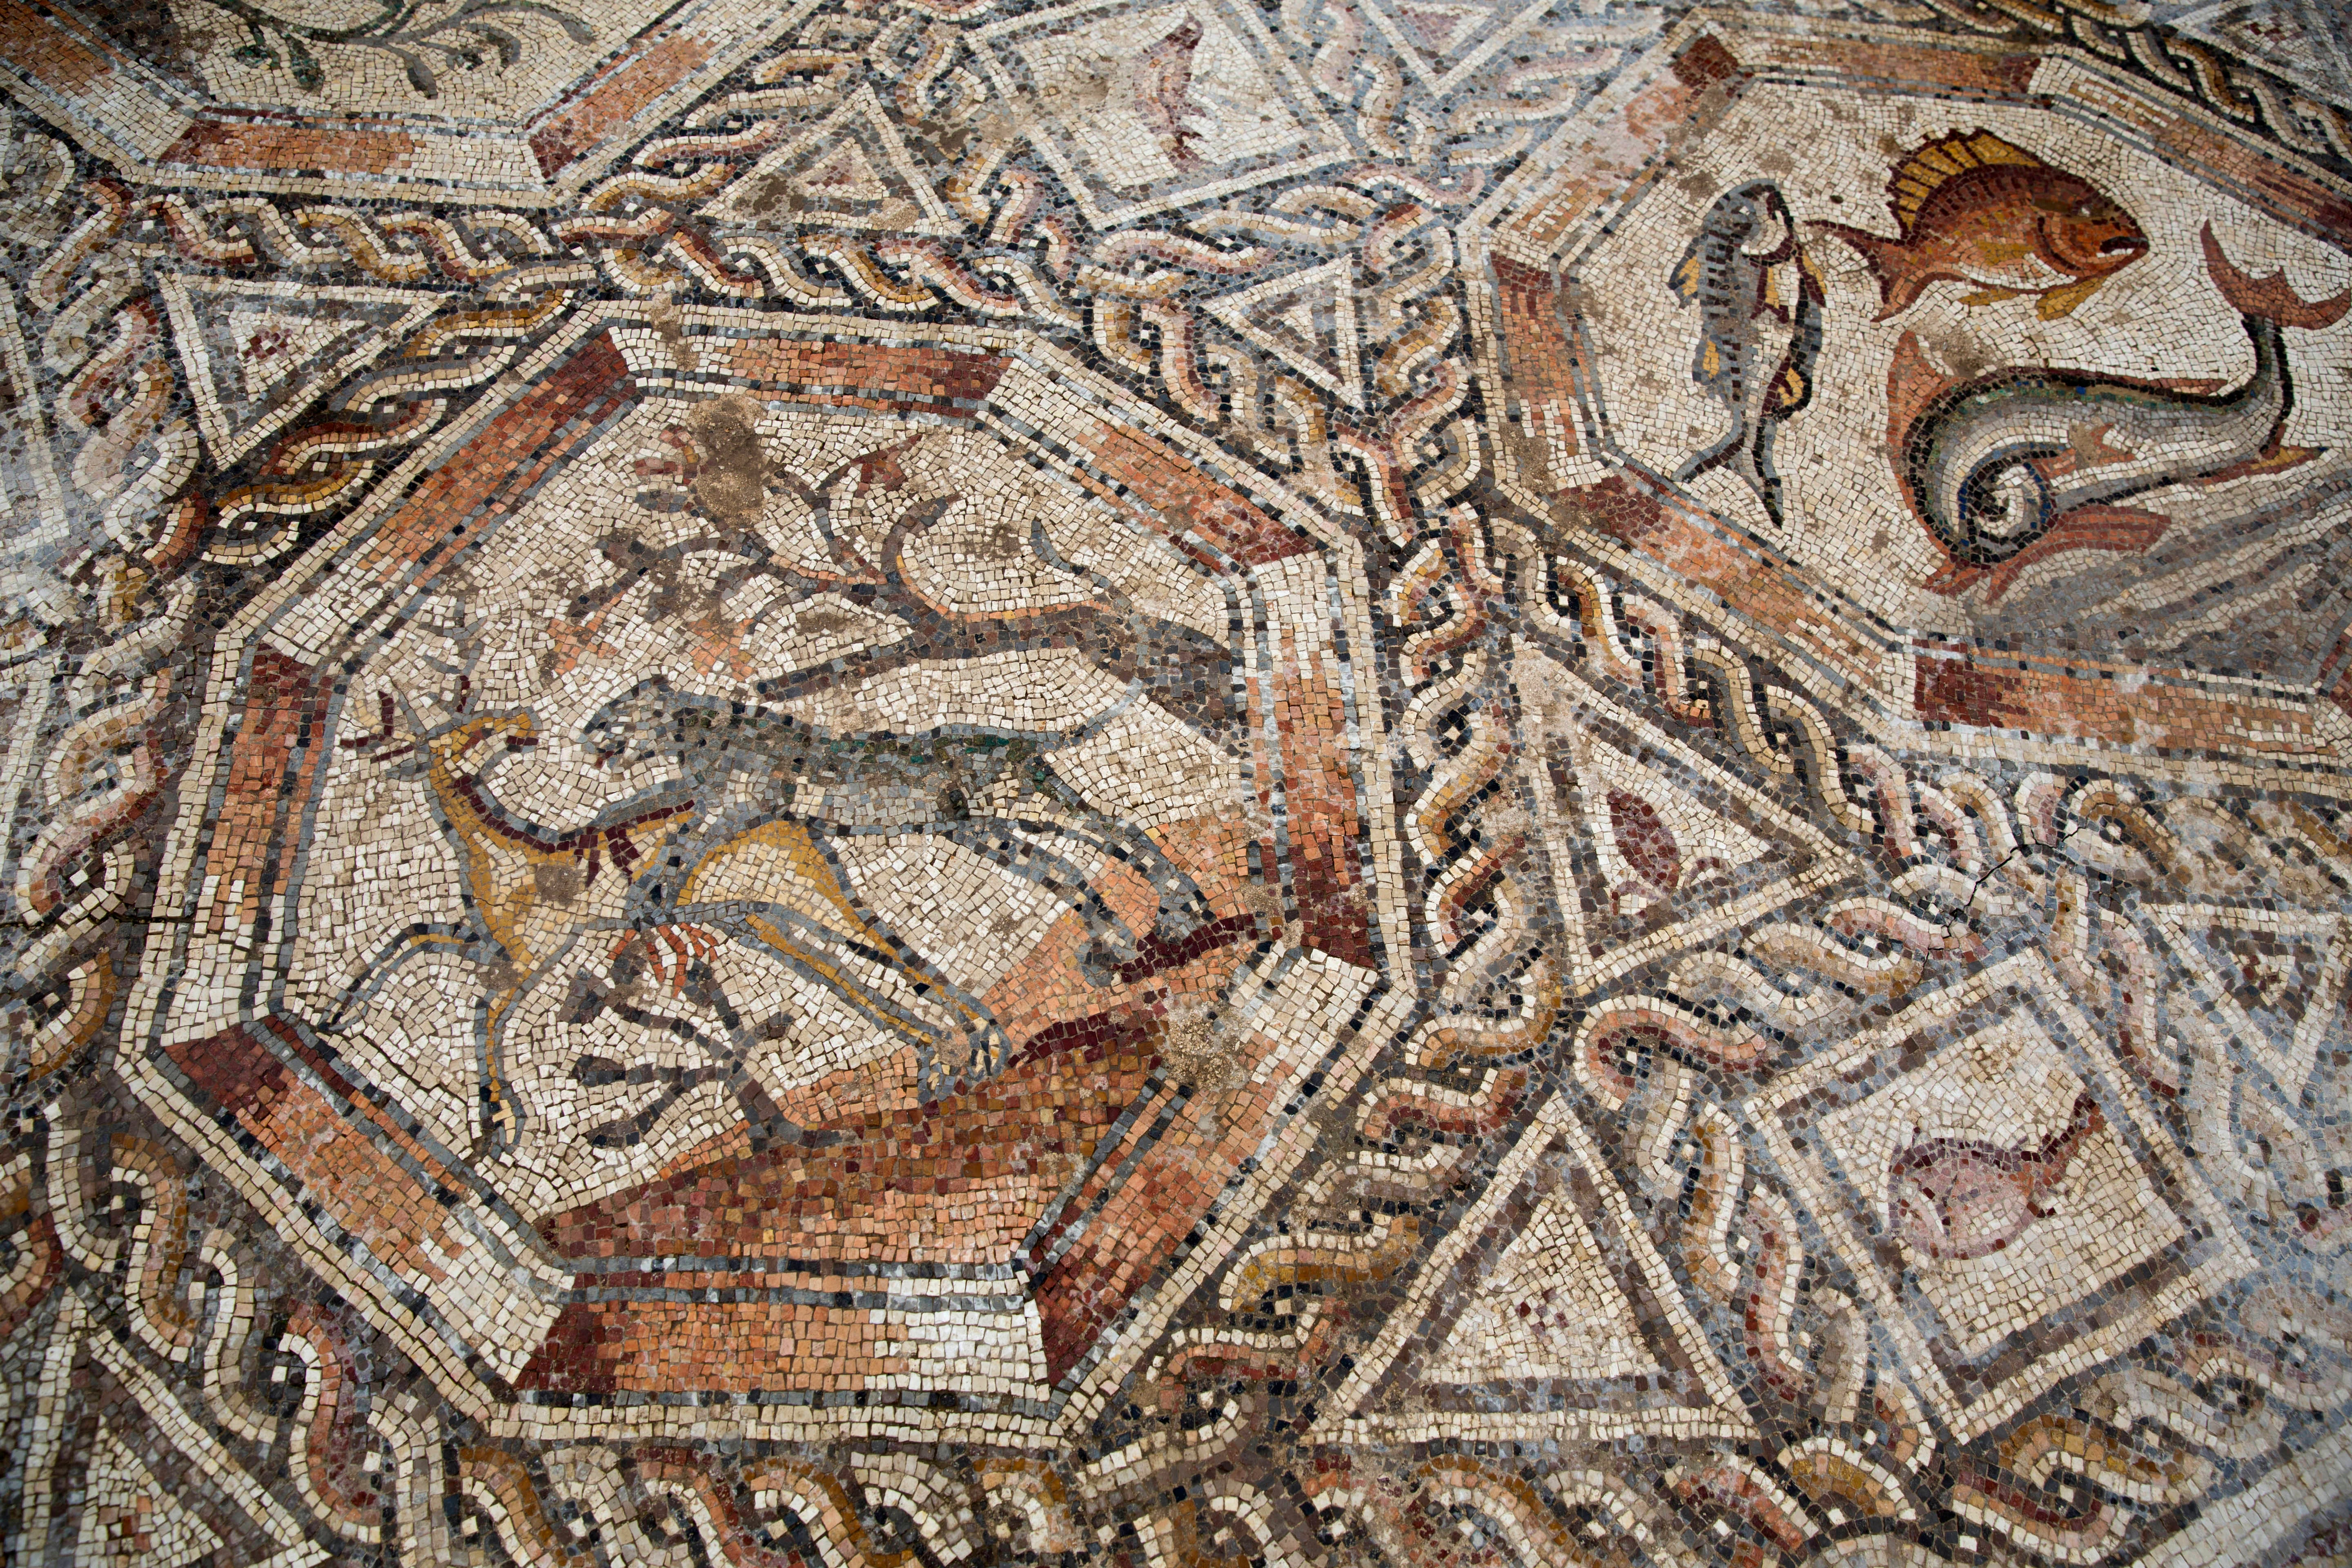 These Huge Roman Mosaics Were Hidden Under City Streets For 1,700 Years